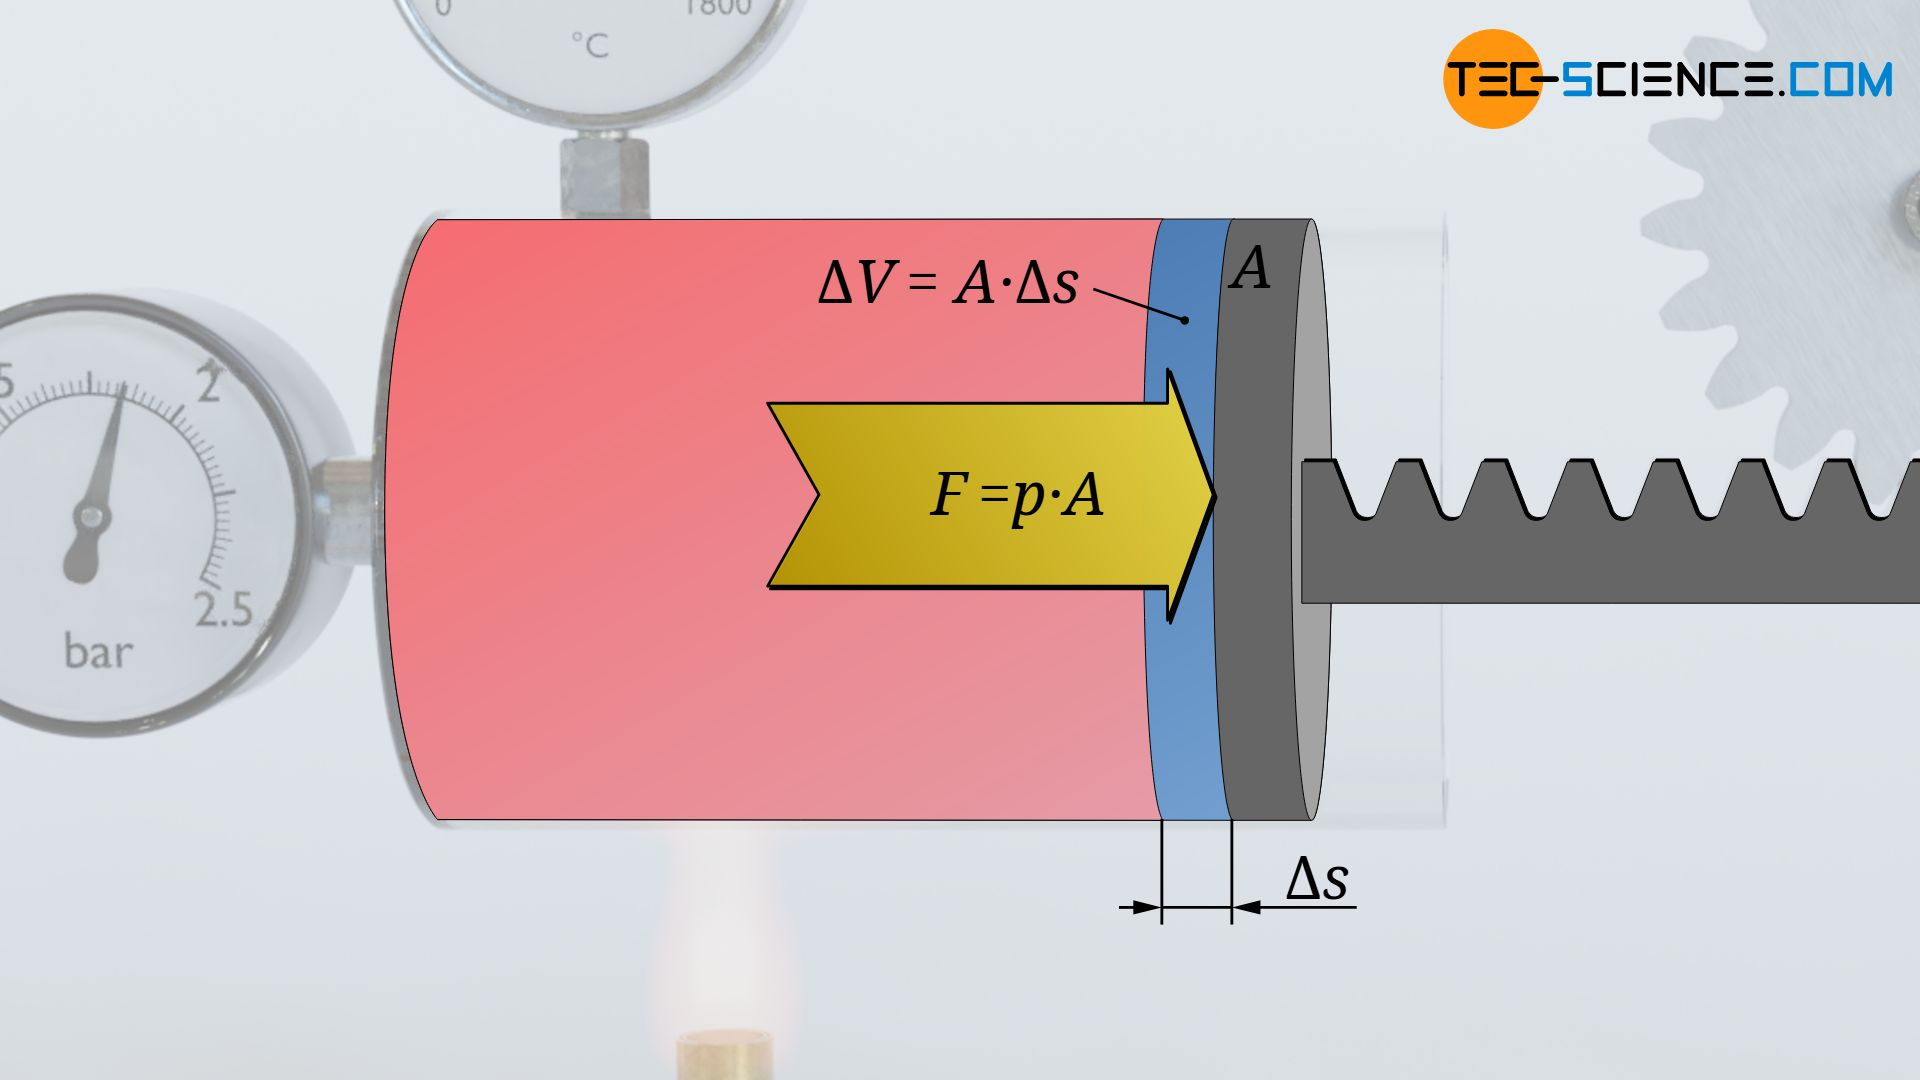 Relationship between the volume change and the displacement of the piston